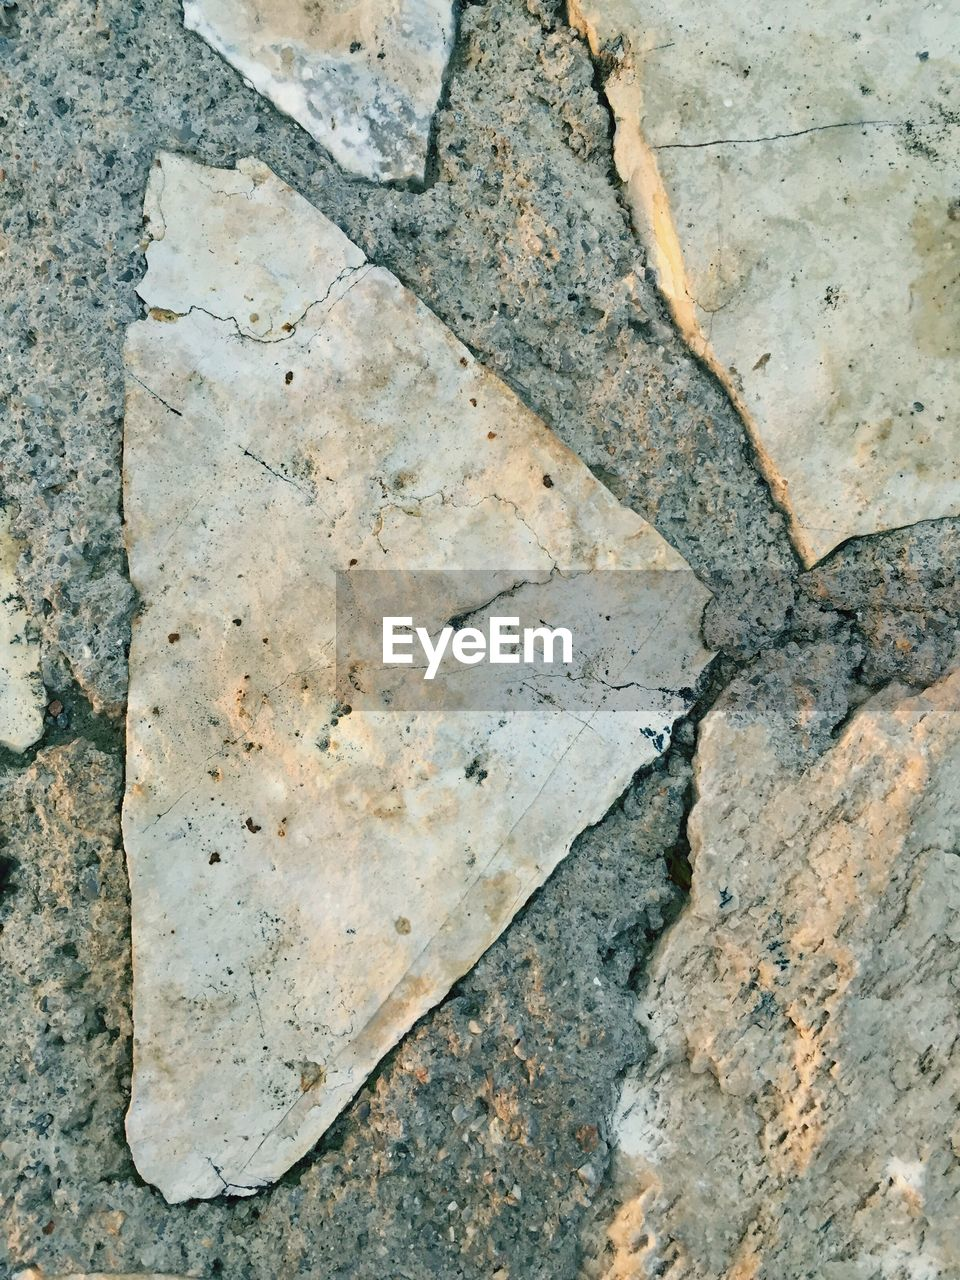 rock - object, stone - object, textured, backgrounds, stone material, full frame, pattern, marble, close-up, rough, ancient, kitchen, no people, architecture, nature, outdoors, day